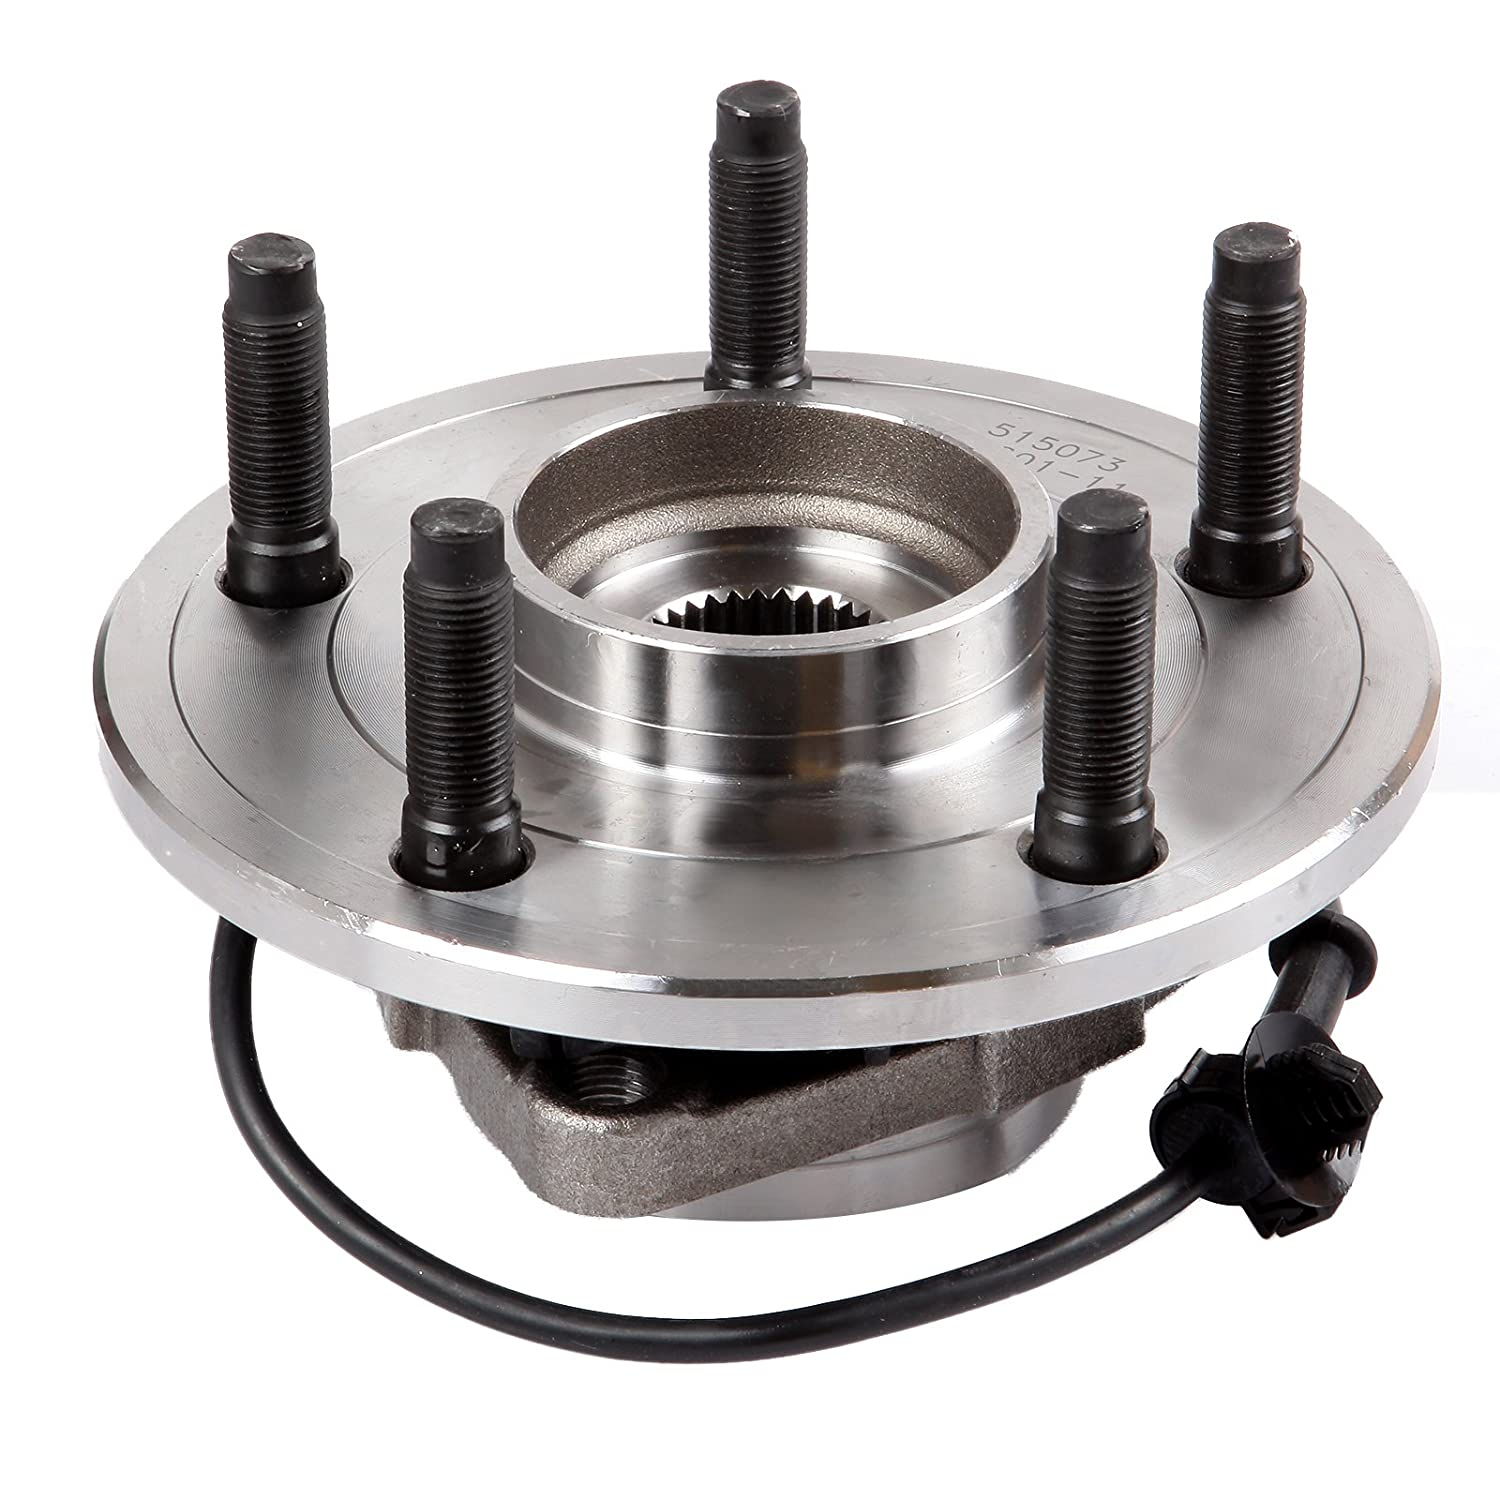 ECCPP Replacement for Pair of 2 New Complete Front Wheel Hub and Bearing for 2002-2006 Dodge RAM 1500 5 Lugs W//ABS 515073/¡/Á2